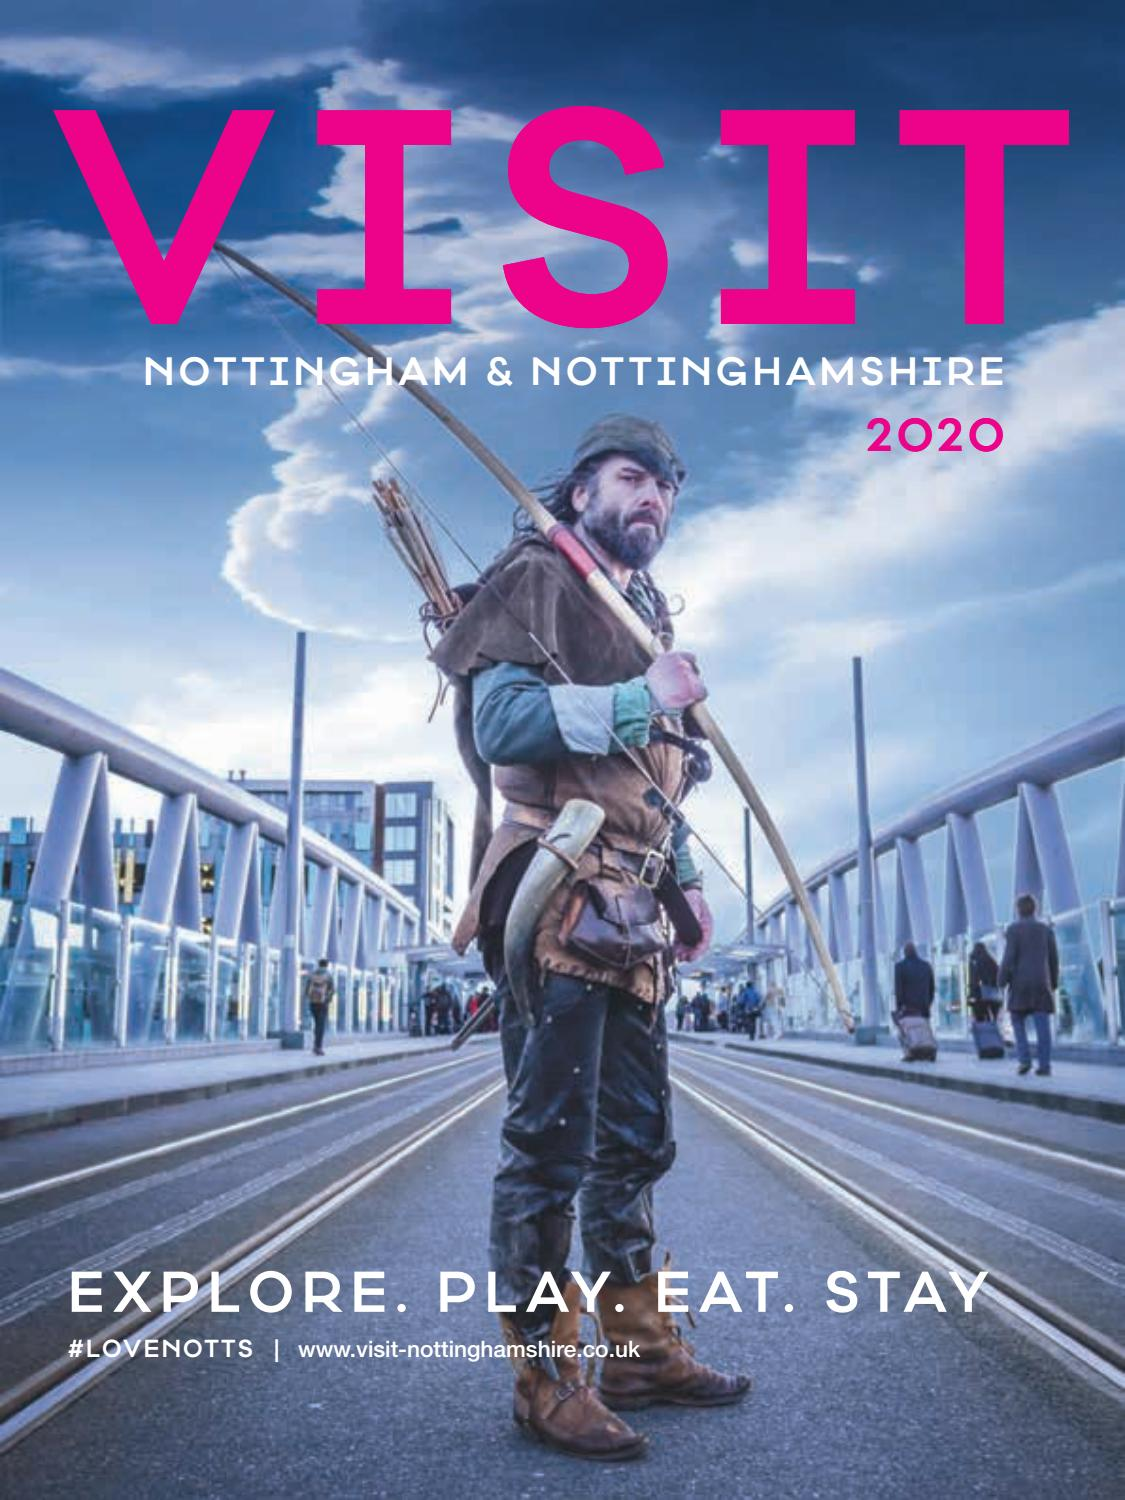 Nottingham and Nottinghamshire 2020 Visitor Guide by Visit Nottinghamshire  - issuu